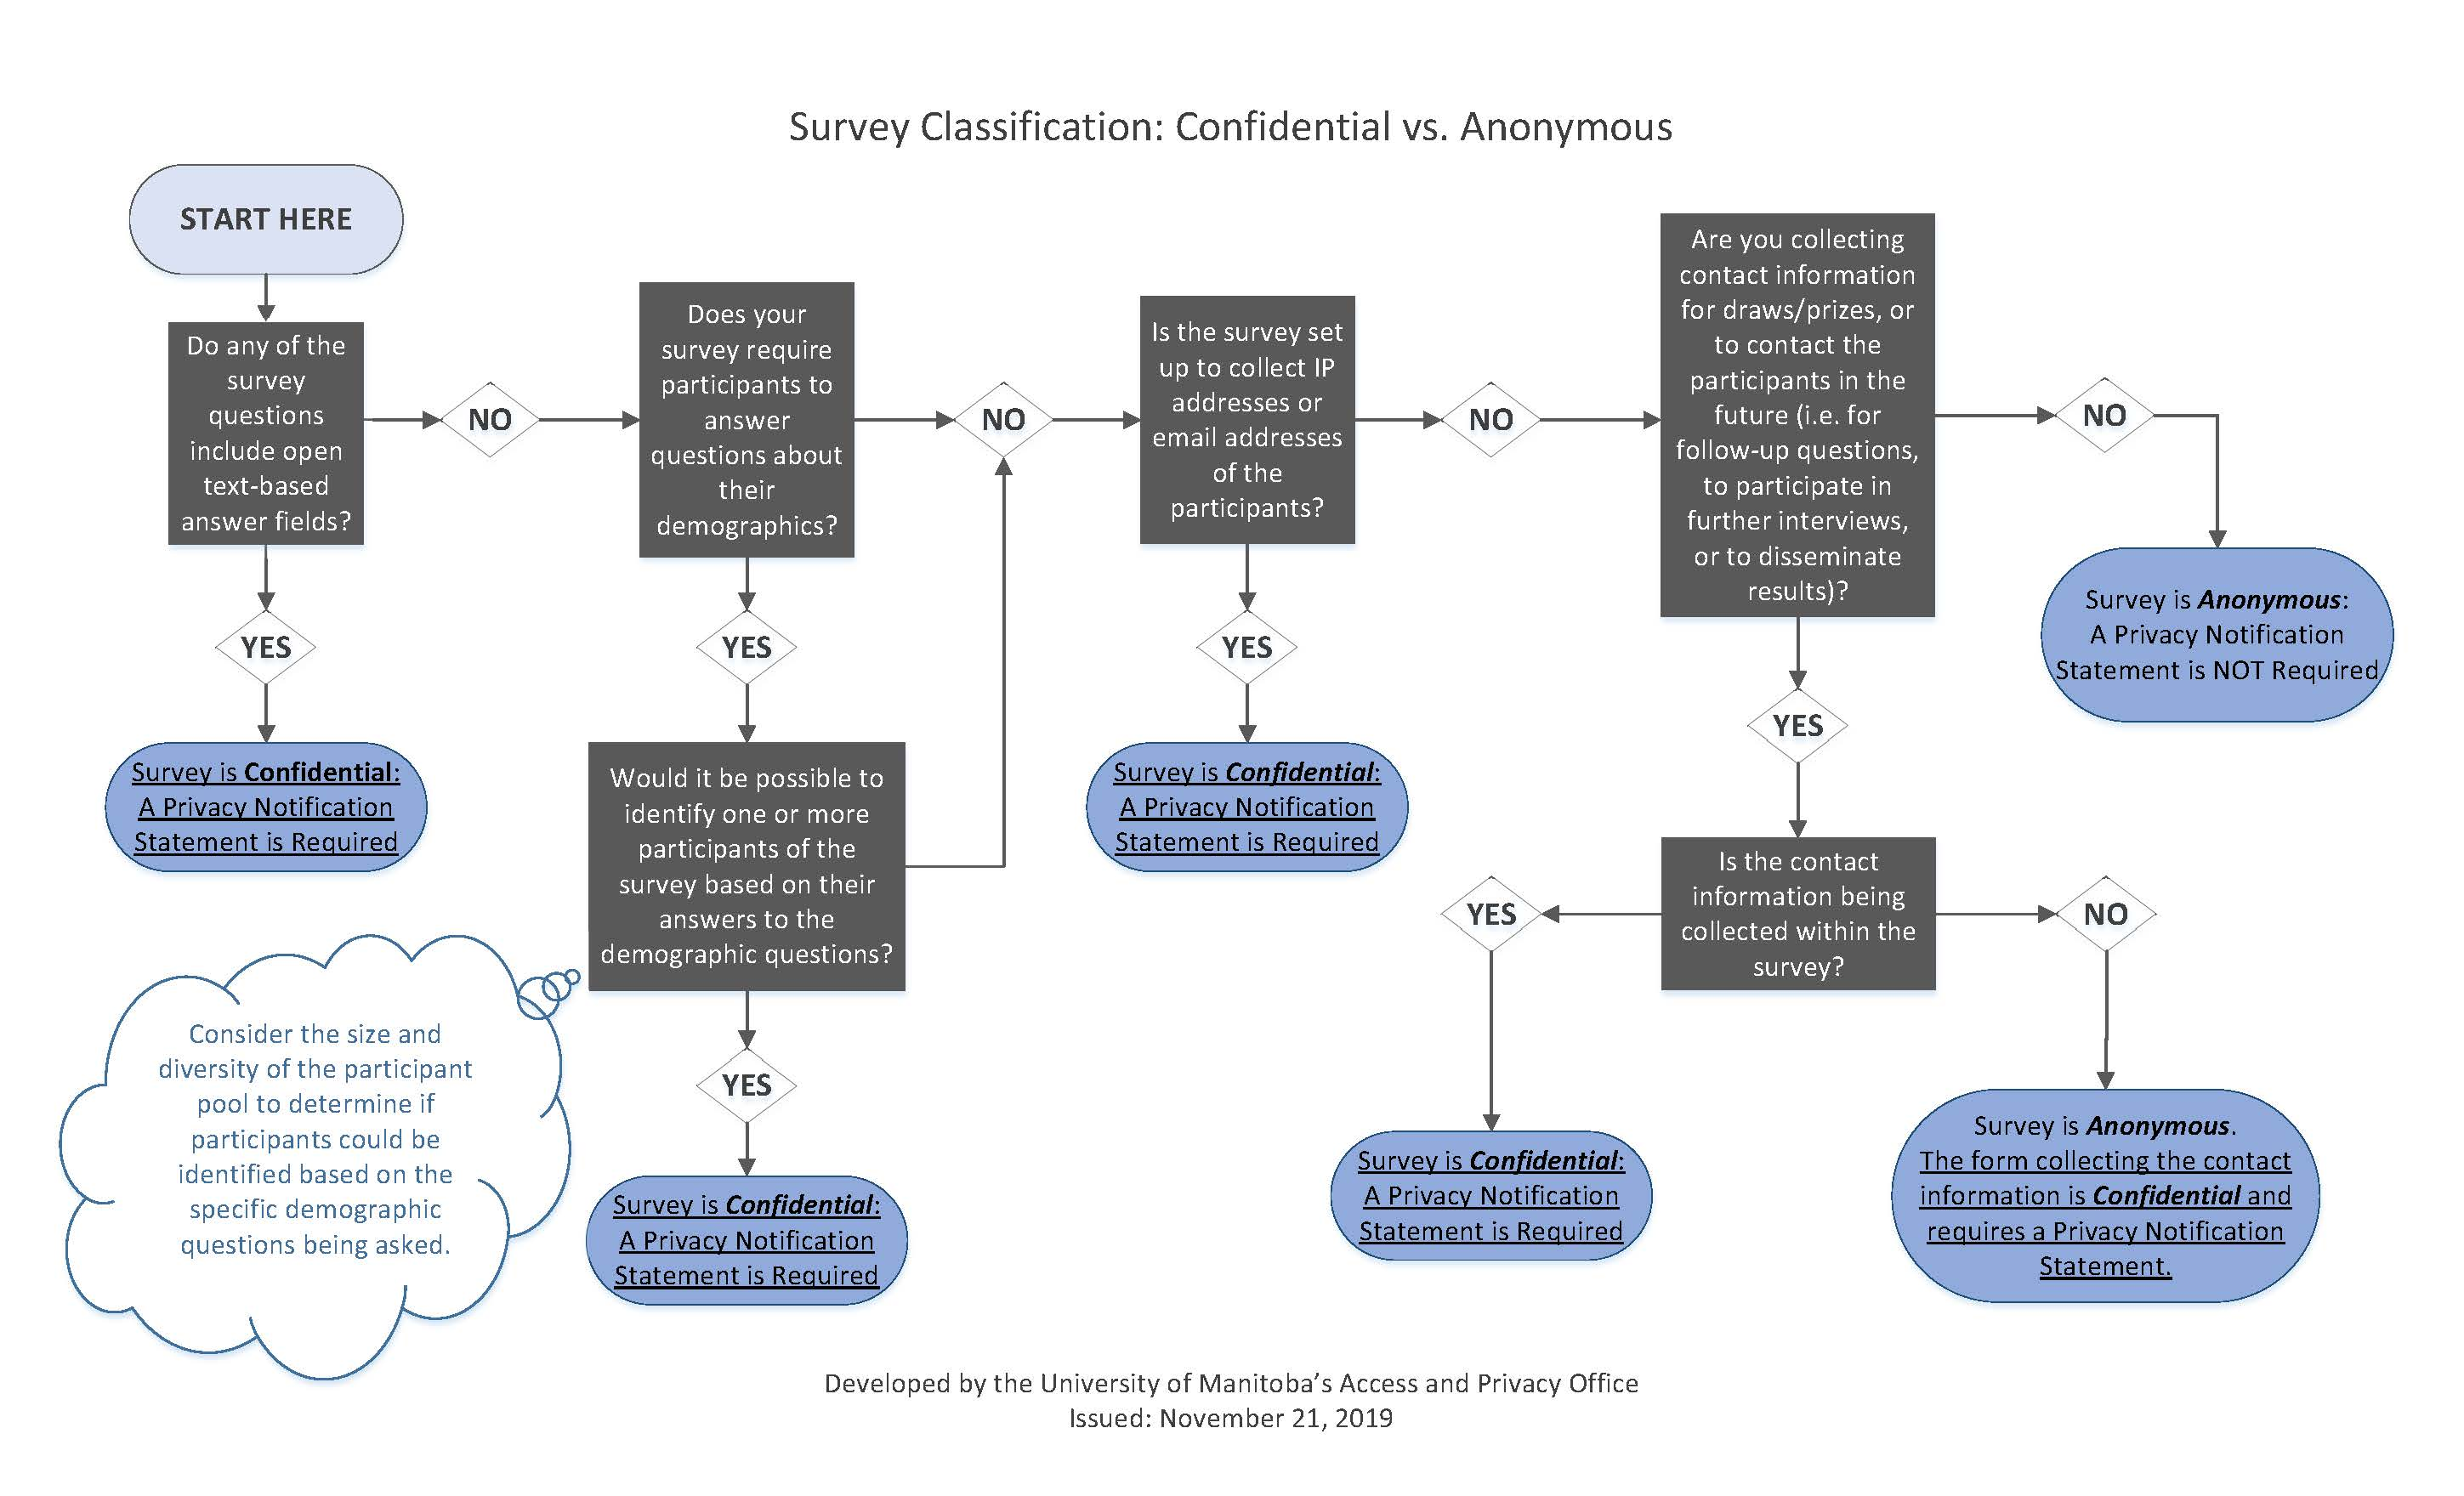 Image of Survey Classification Decision Tree